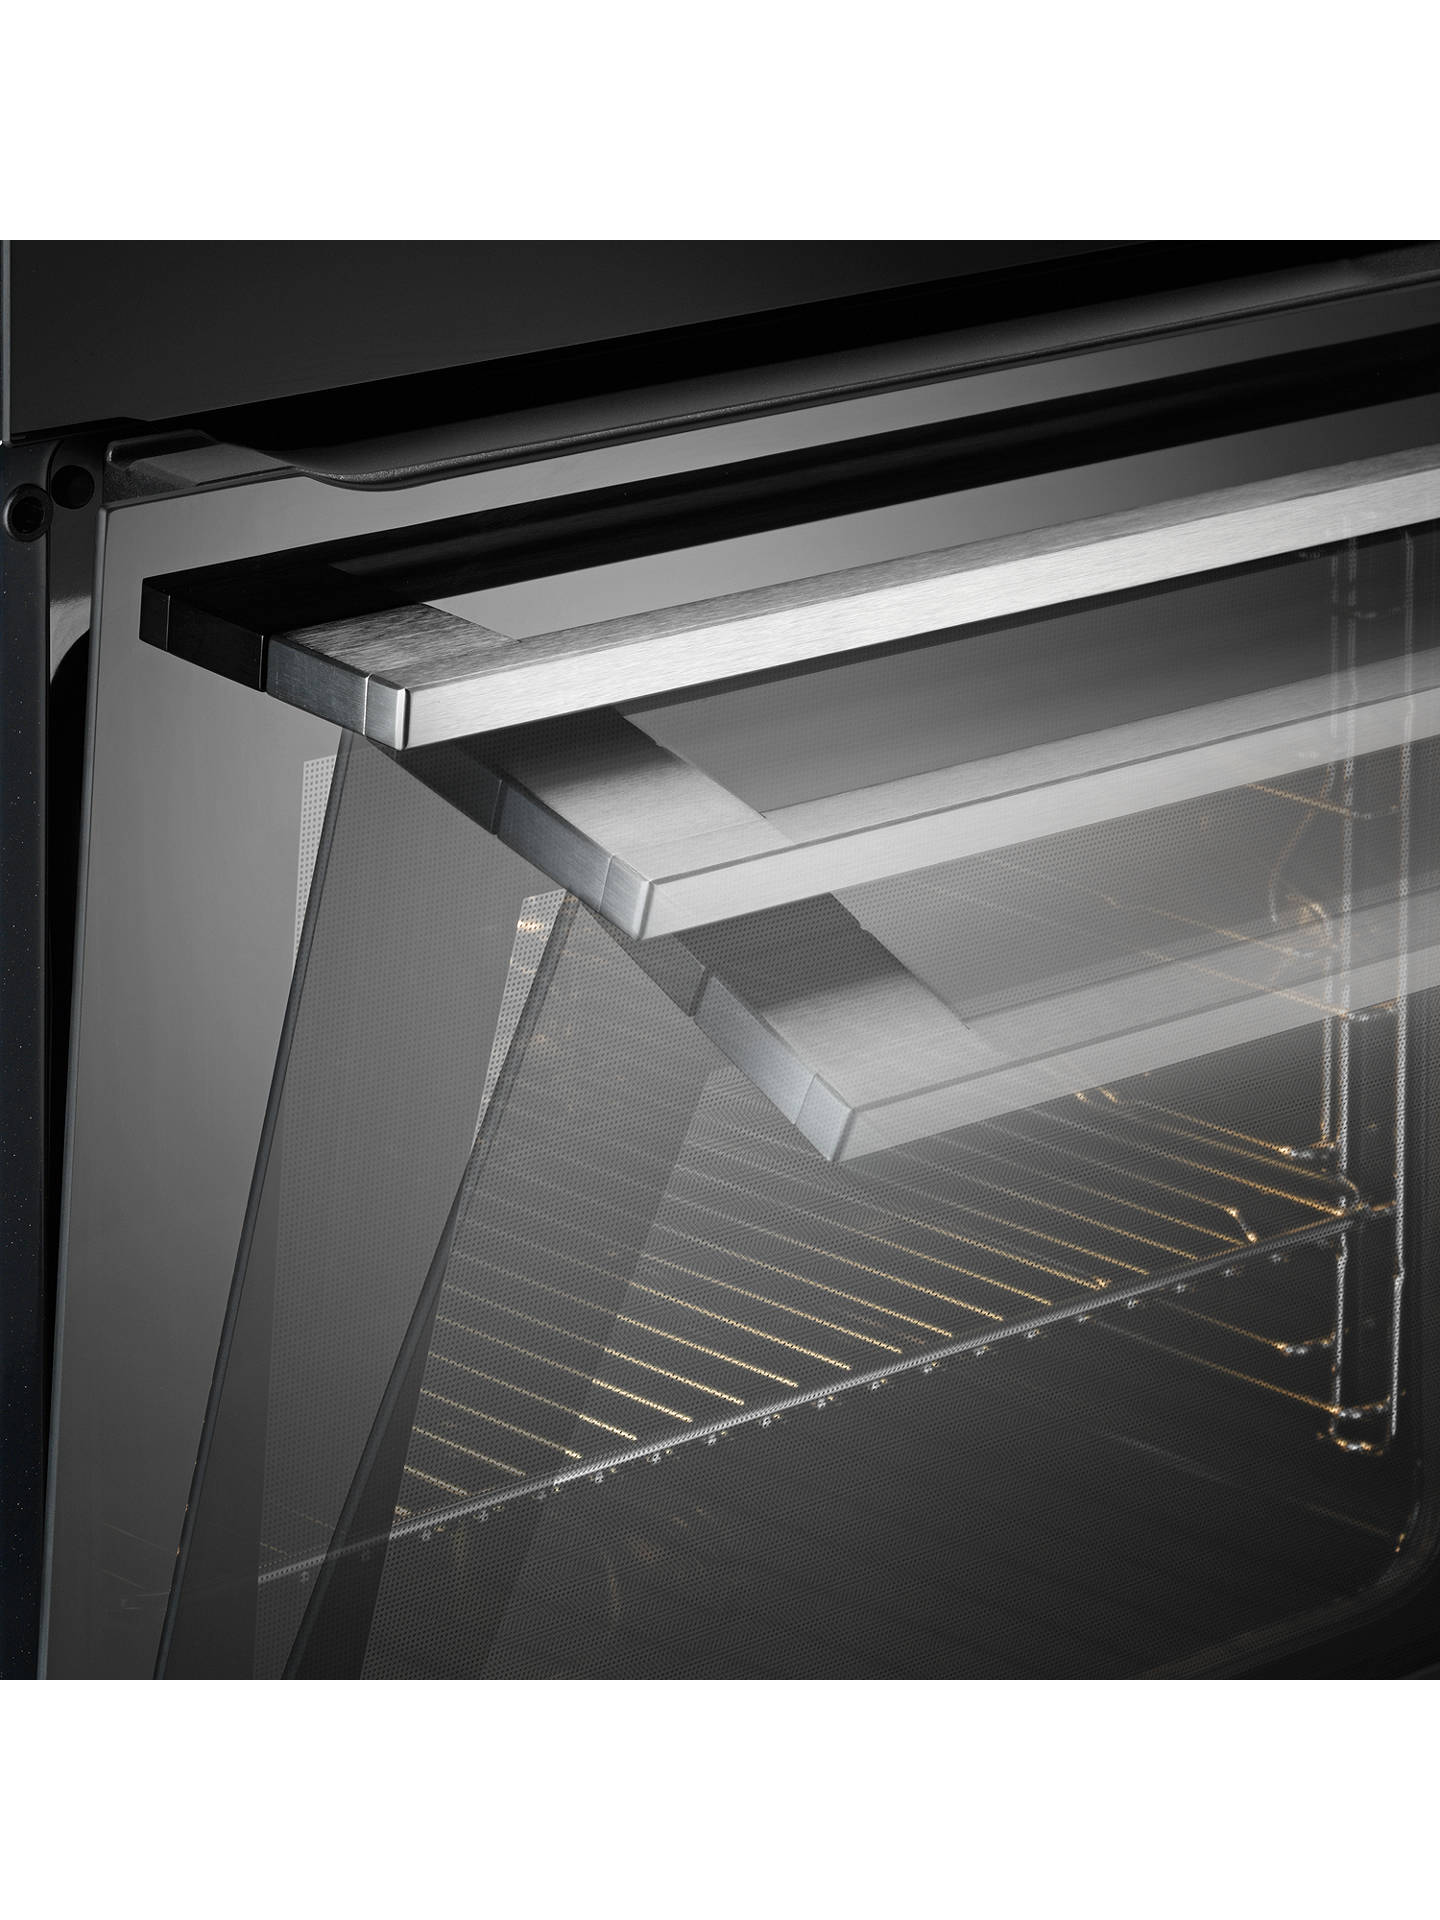 BuyAEG BPE642020M Built-In Single Oven, Stainless Steel Online at johnlewis.com